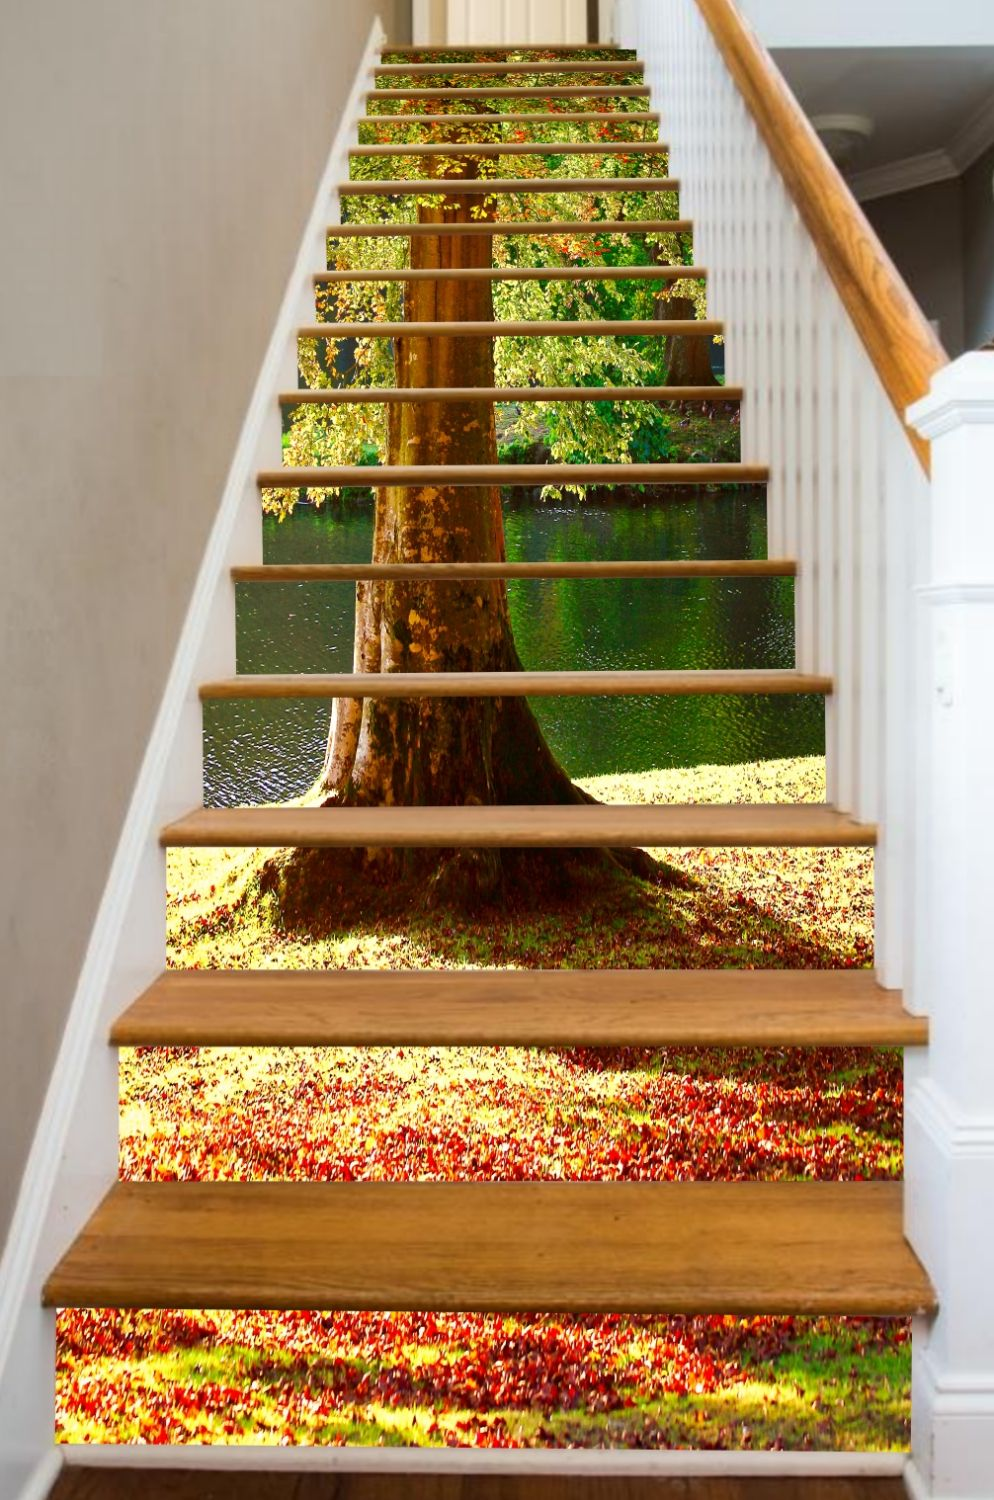 Indian Summer And The Air Is Crisp With Cool Autumn Leaves Riserart Brings These Soft Warm Days Into Your Hom Stairway Art Stairs Design Stair Risers